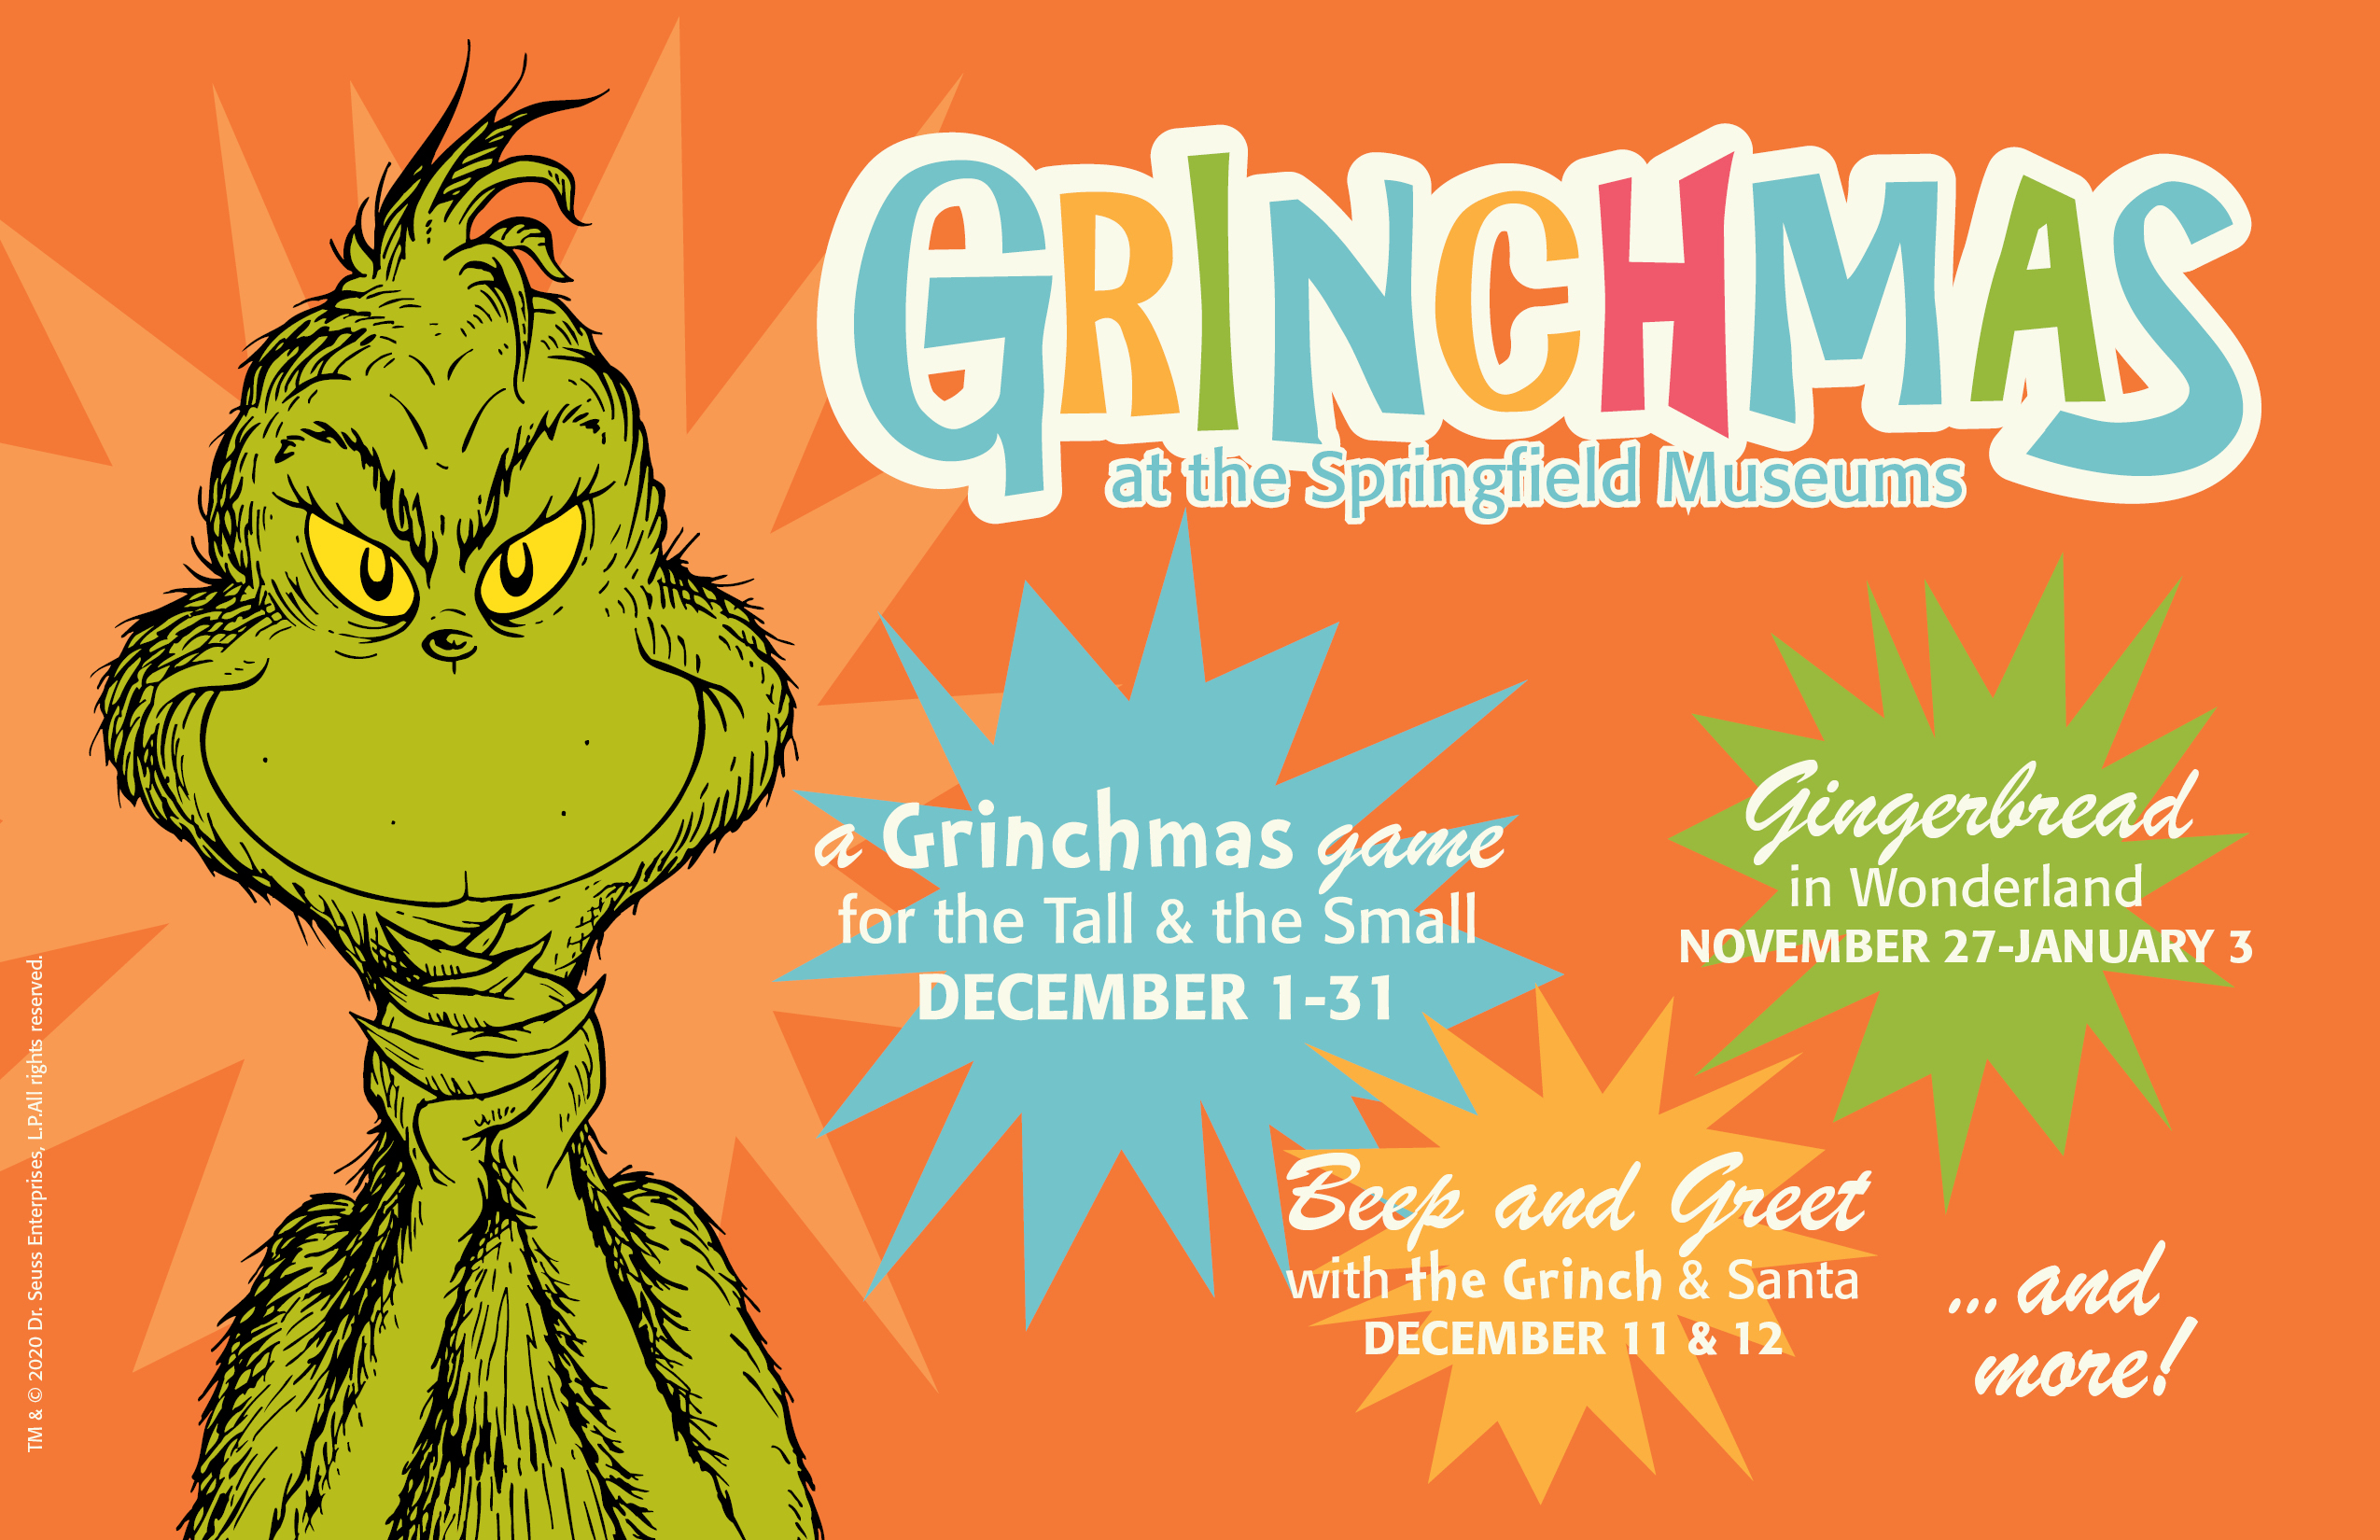 Grinchmas At The Springfield Museums